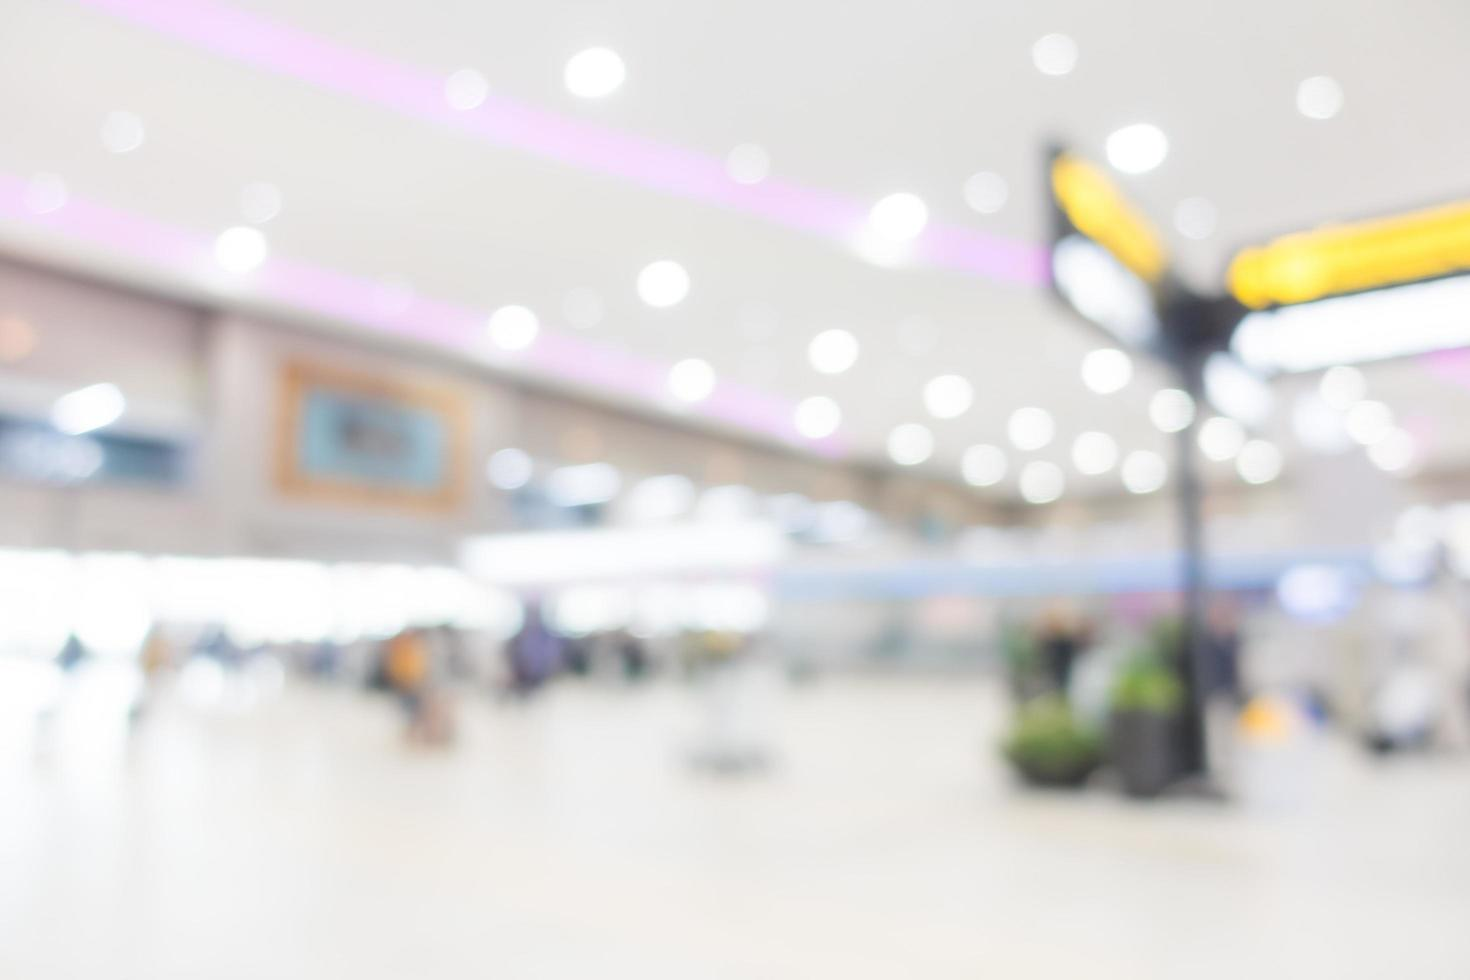 abstract intreepupil luchthaven interieur voor achtergrond foto